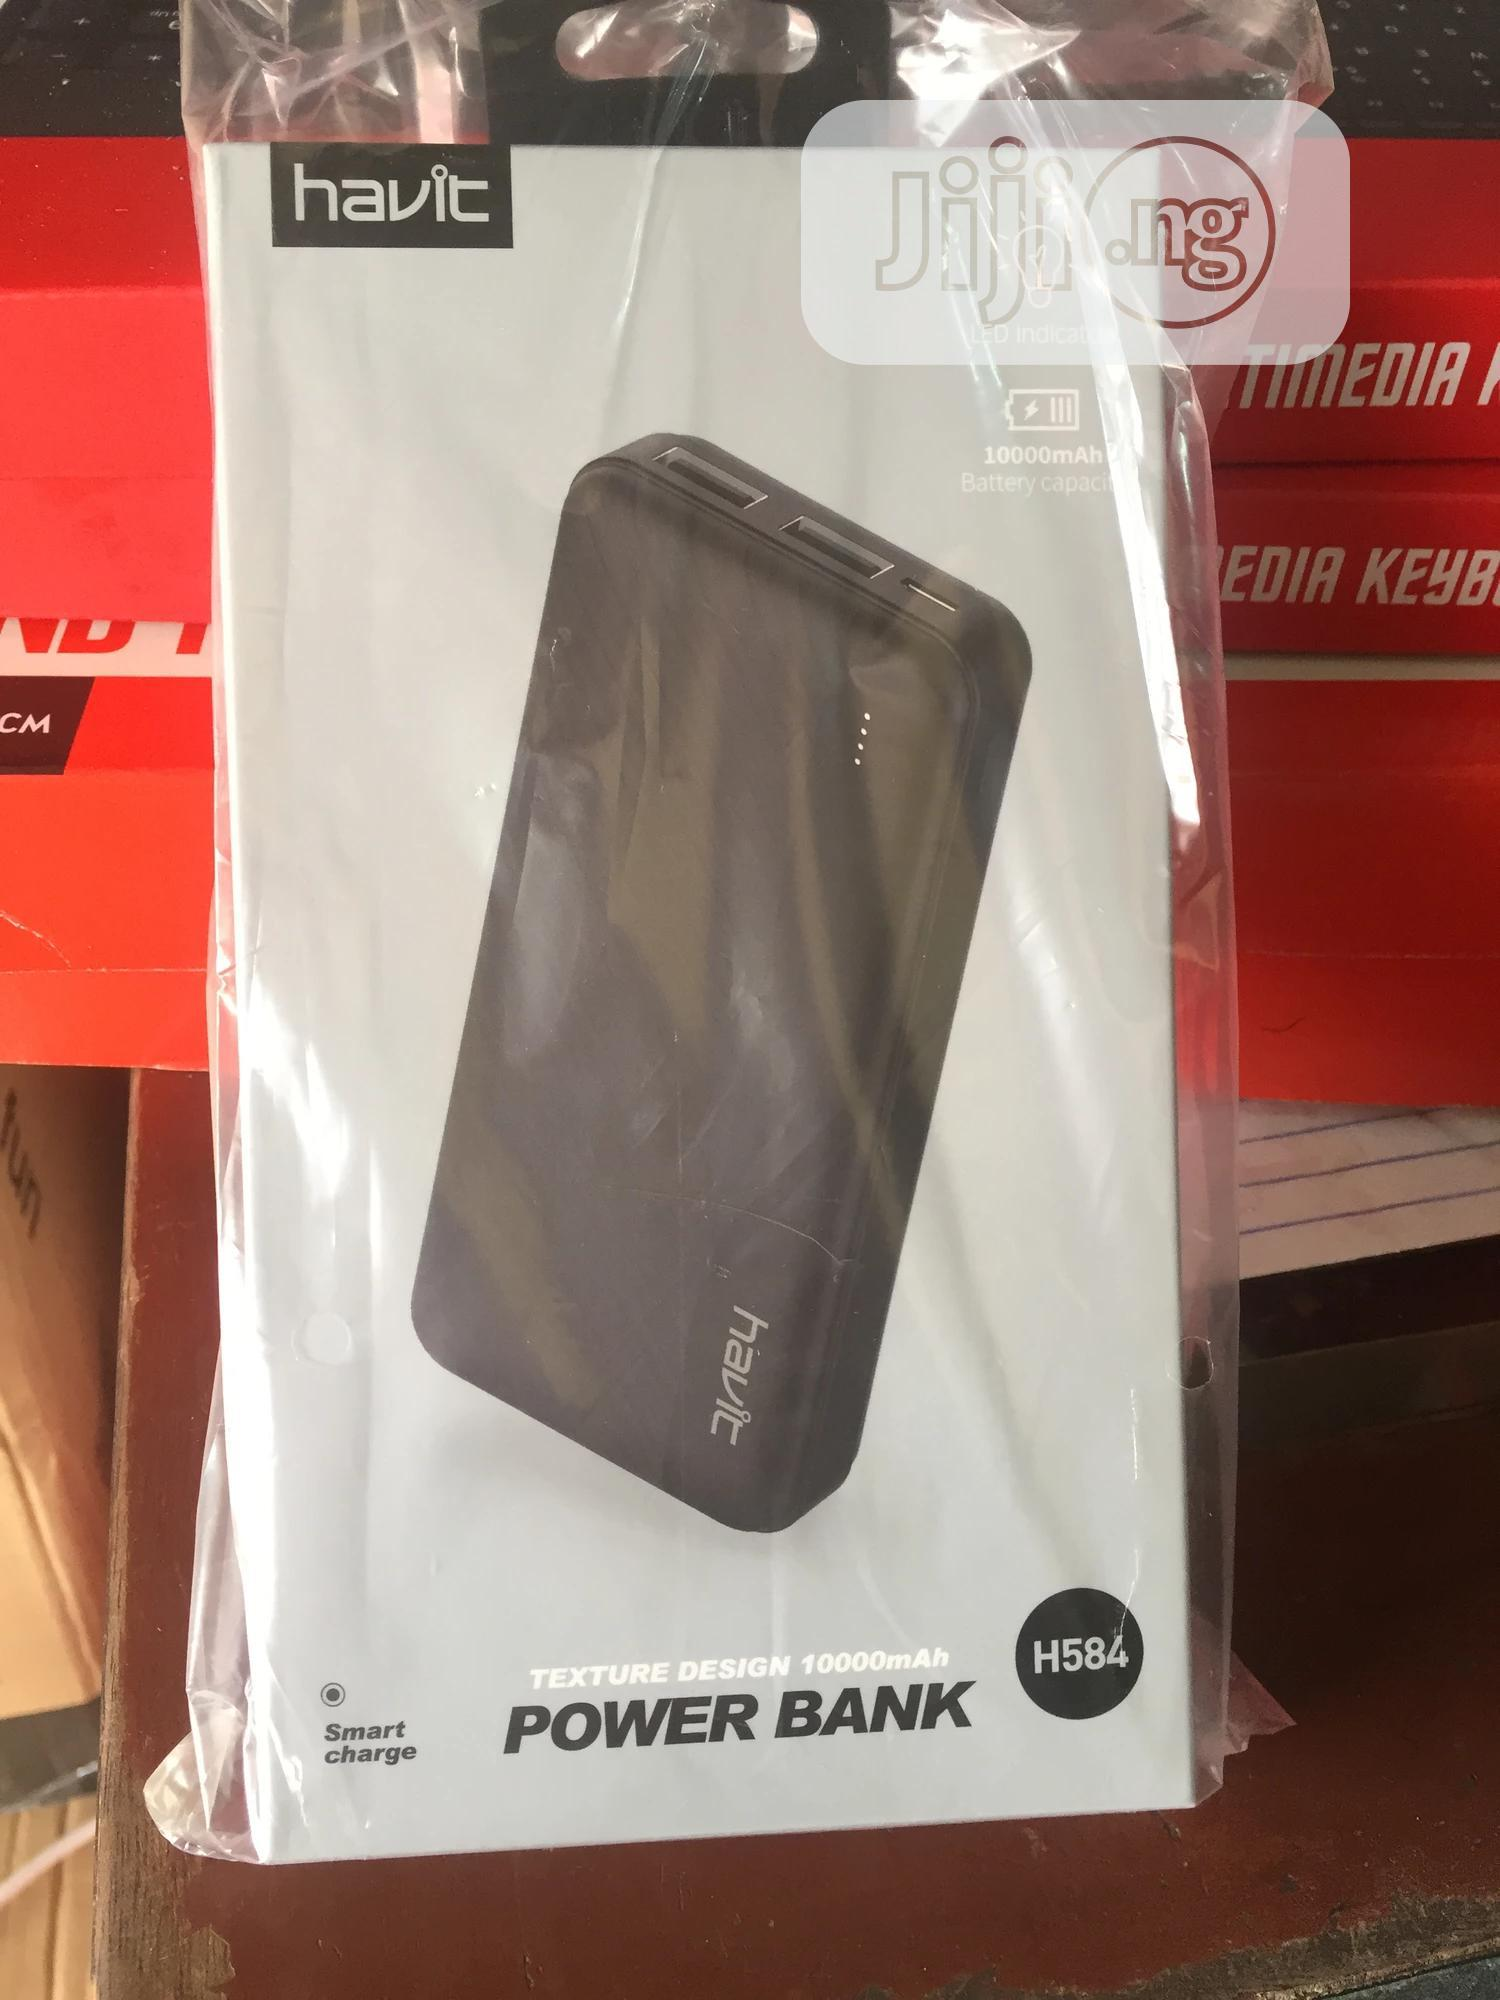 Havit 10000mah Power Bank - H584   Accessories for Mobile Phones & Tablets for sale in Ikeja, Lagos State, Nigeria